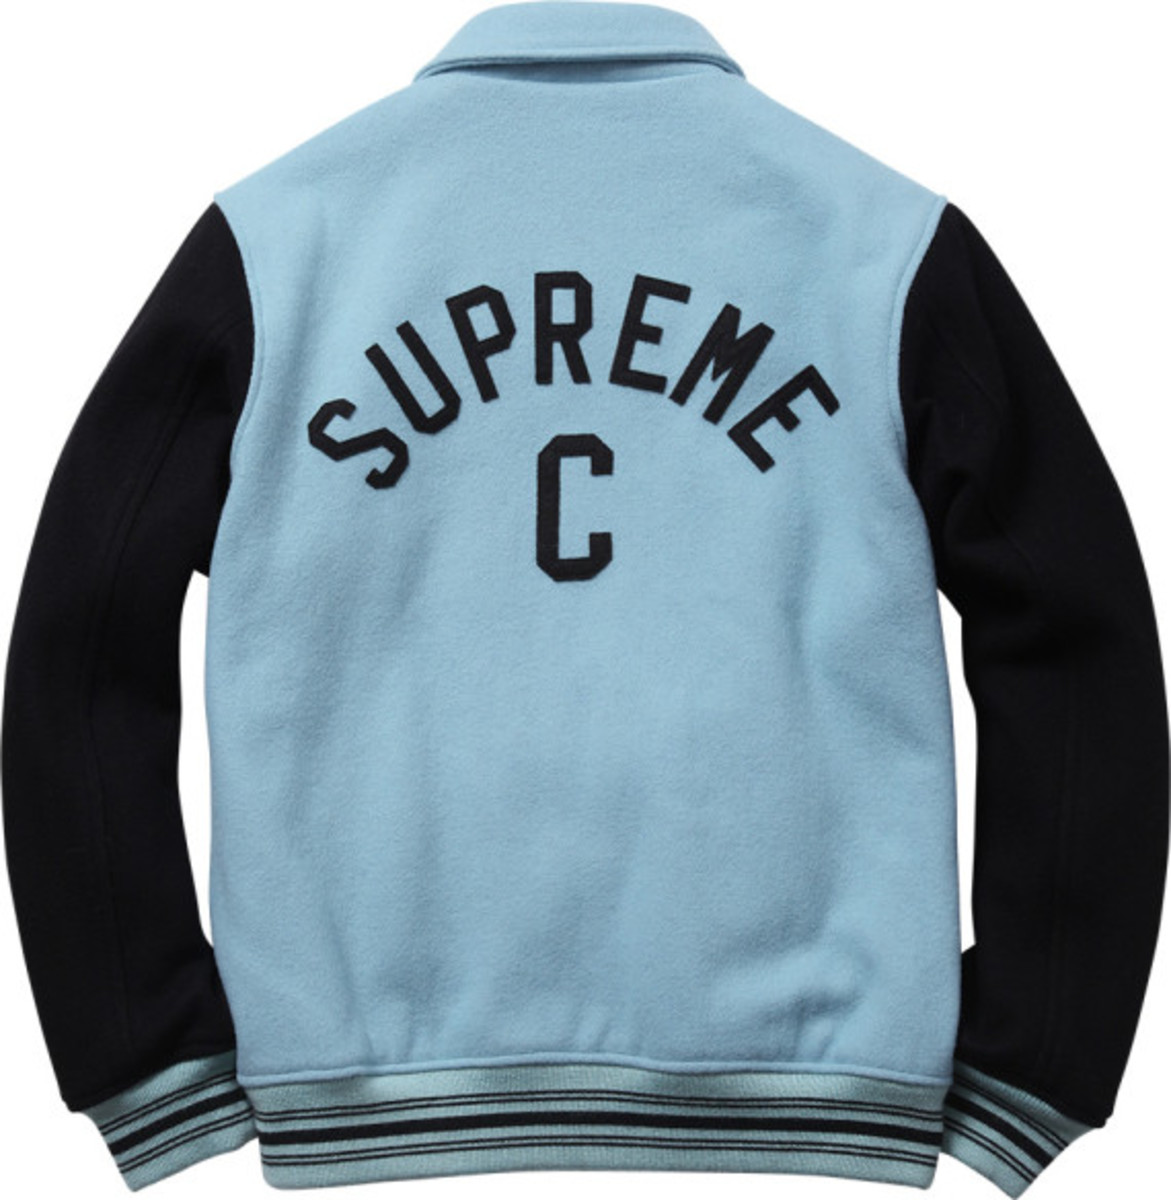 supreme-fall-winter-2013-outerwear-collection-25